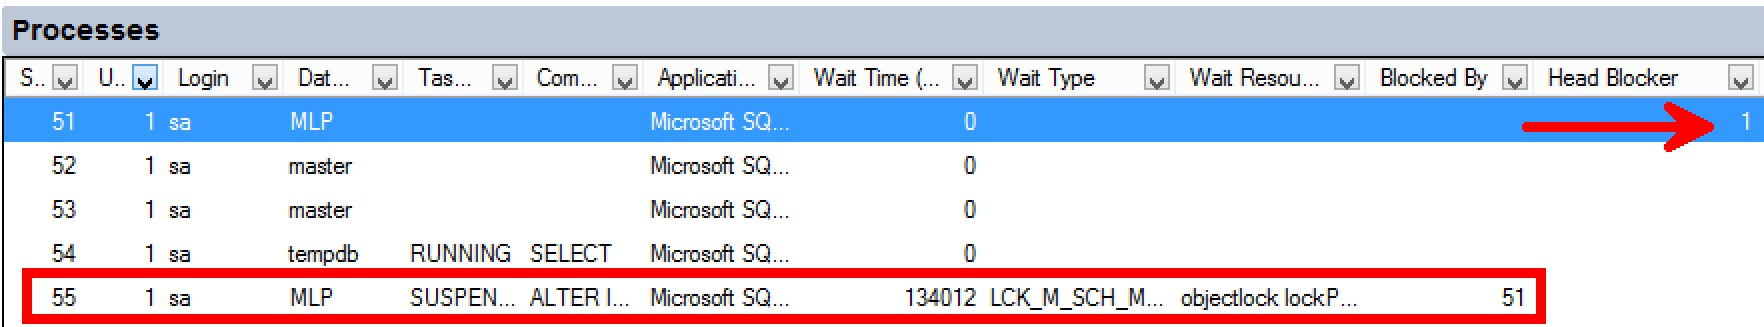 SQL SERVER – Activity Monitor to Identify Blocking – Find Expensive Queries